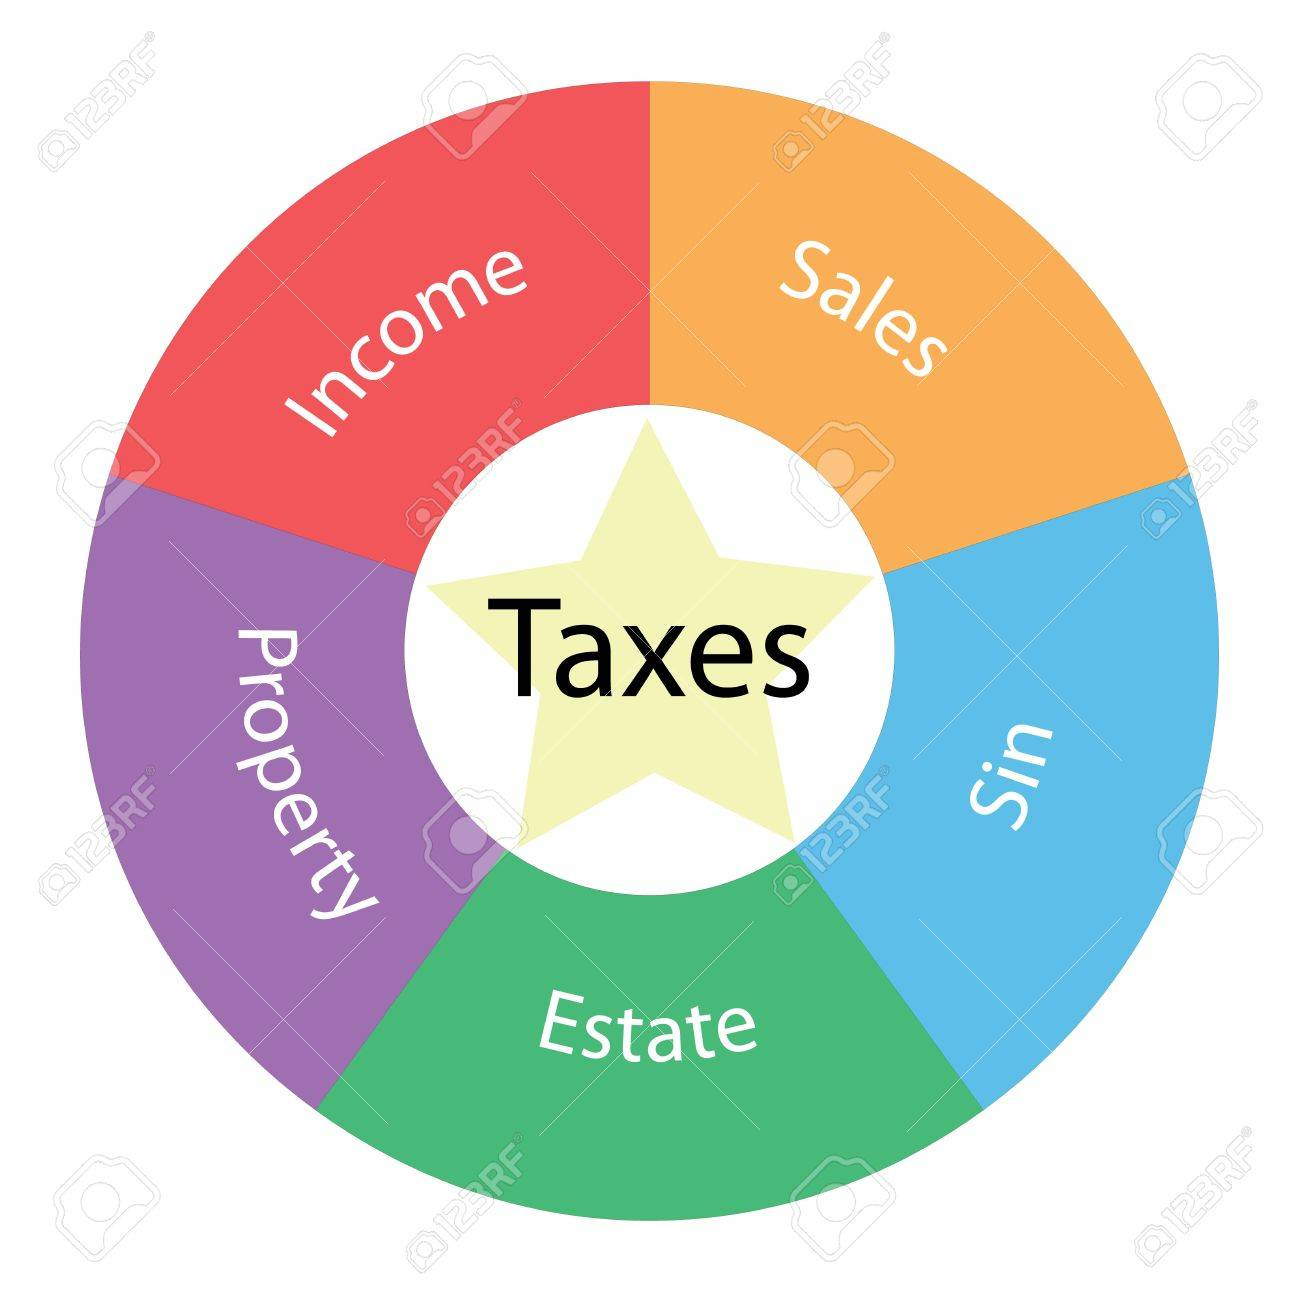 Taxes circular concept with great terms around the center including income, sales, property, estate and sin with a yellow star in the middle Stock Photo - 15571982